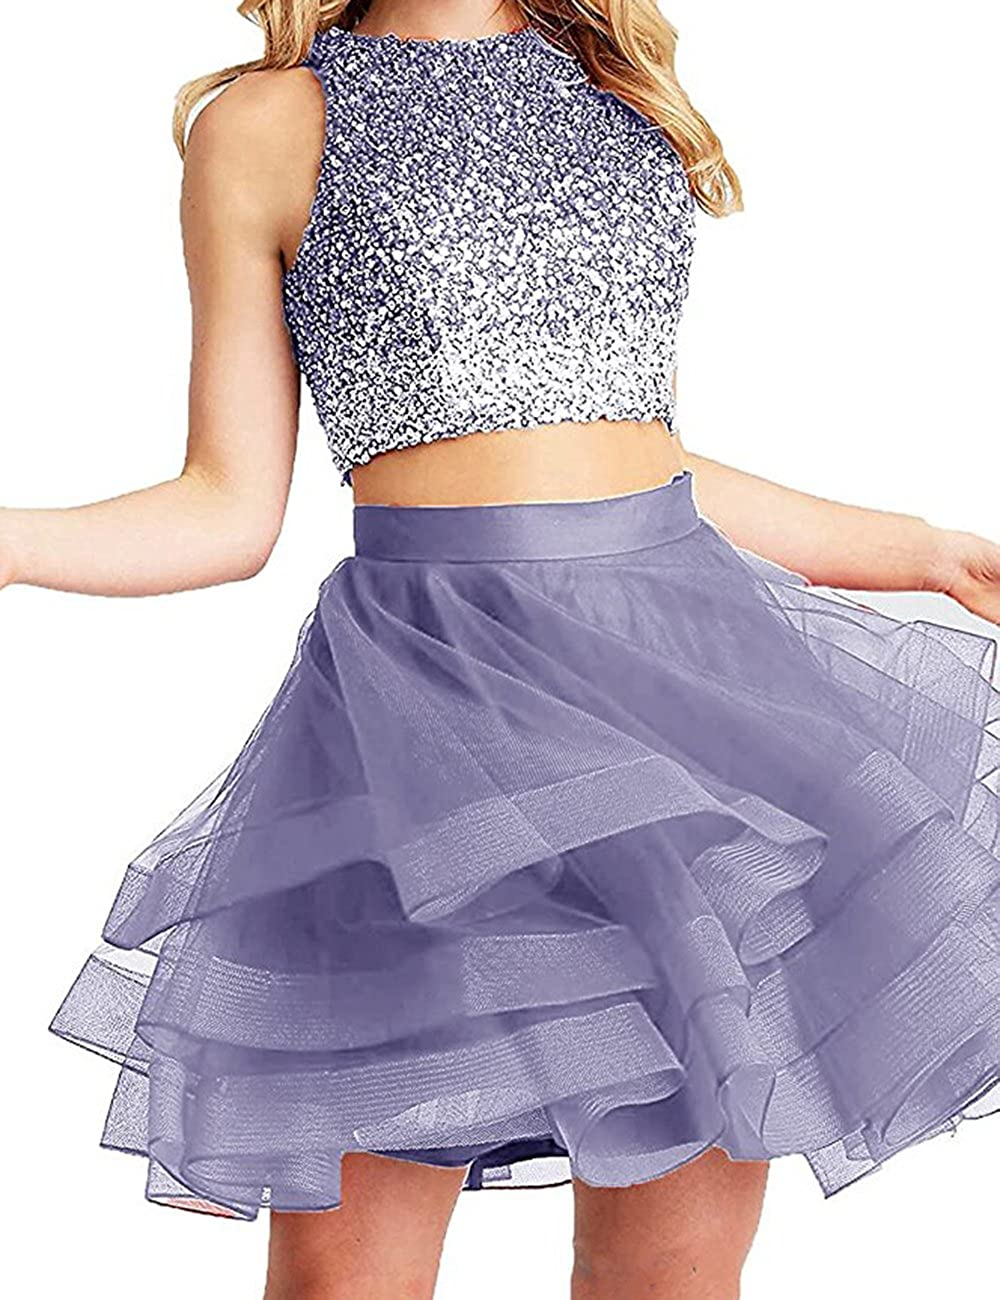 Lavender Beautydress Two Pieces Short Prom Gowns Top Beaded Girls Homecoming Dress